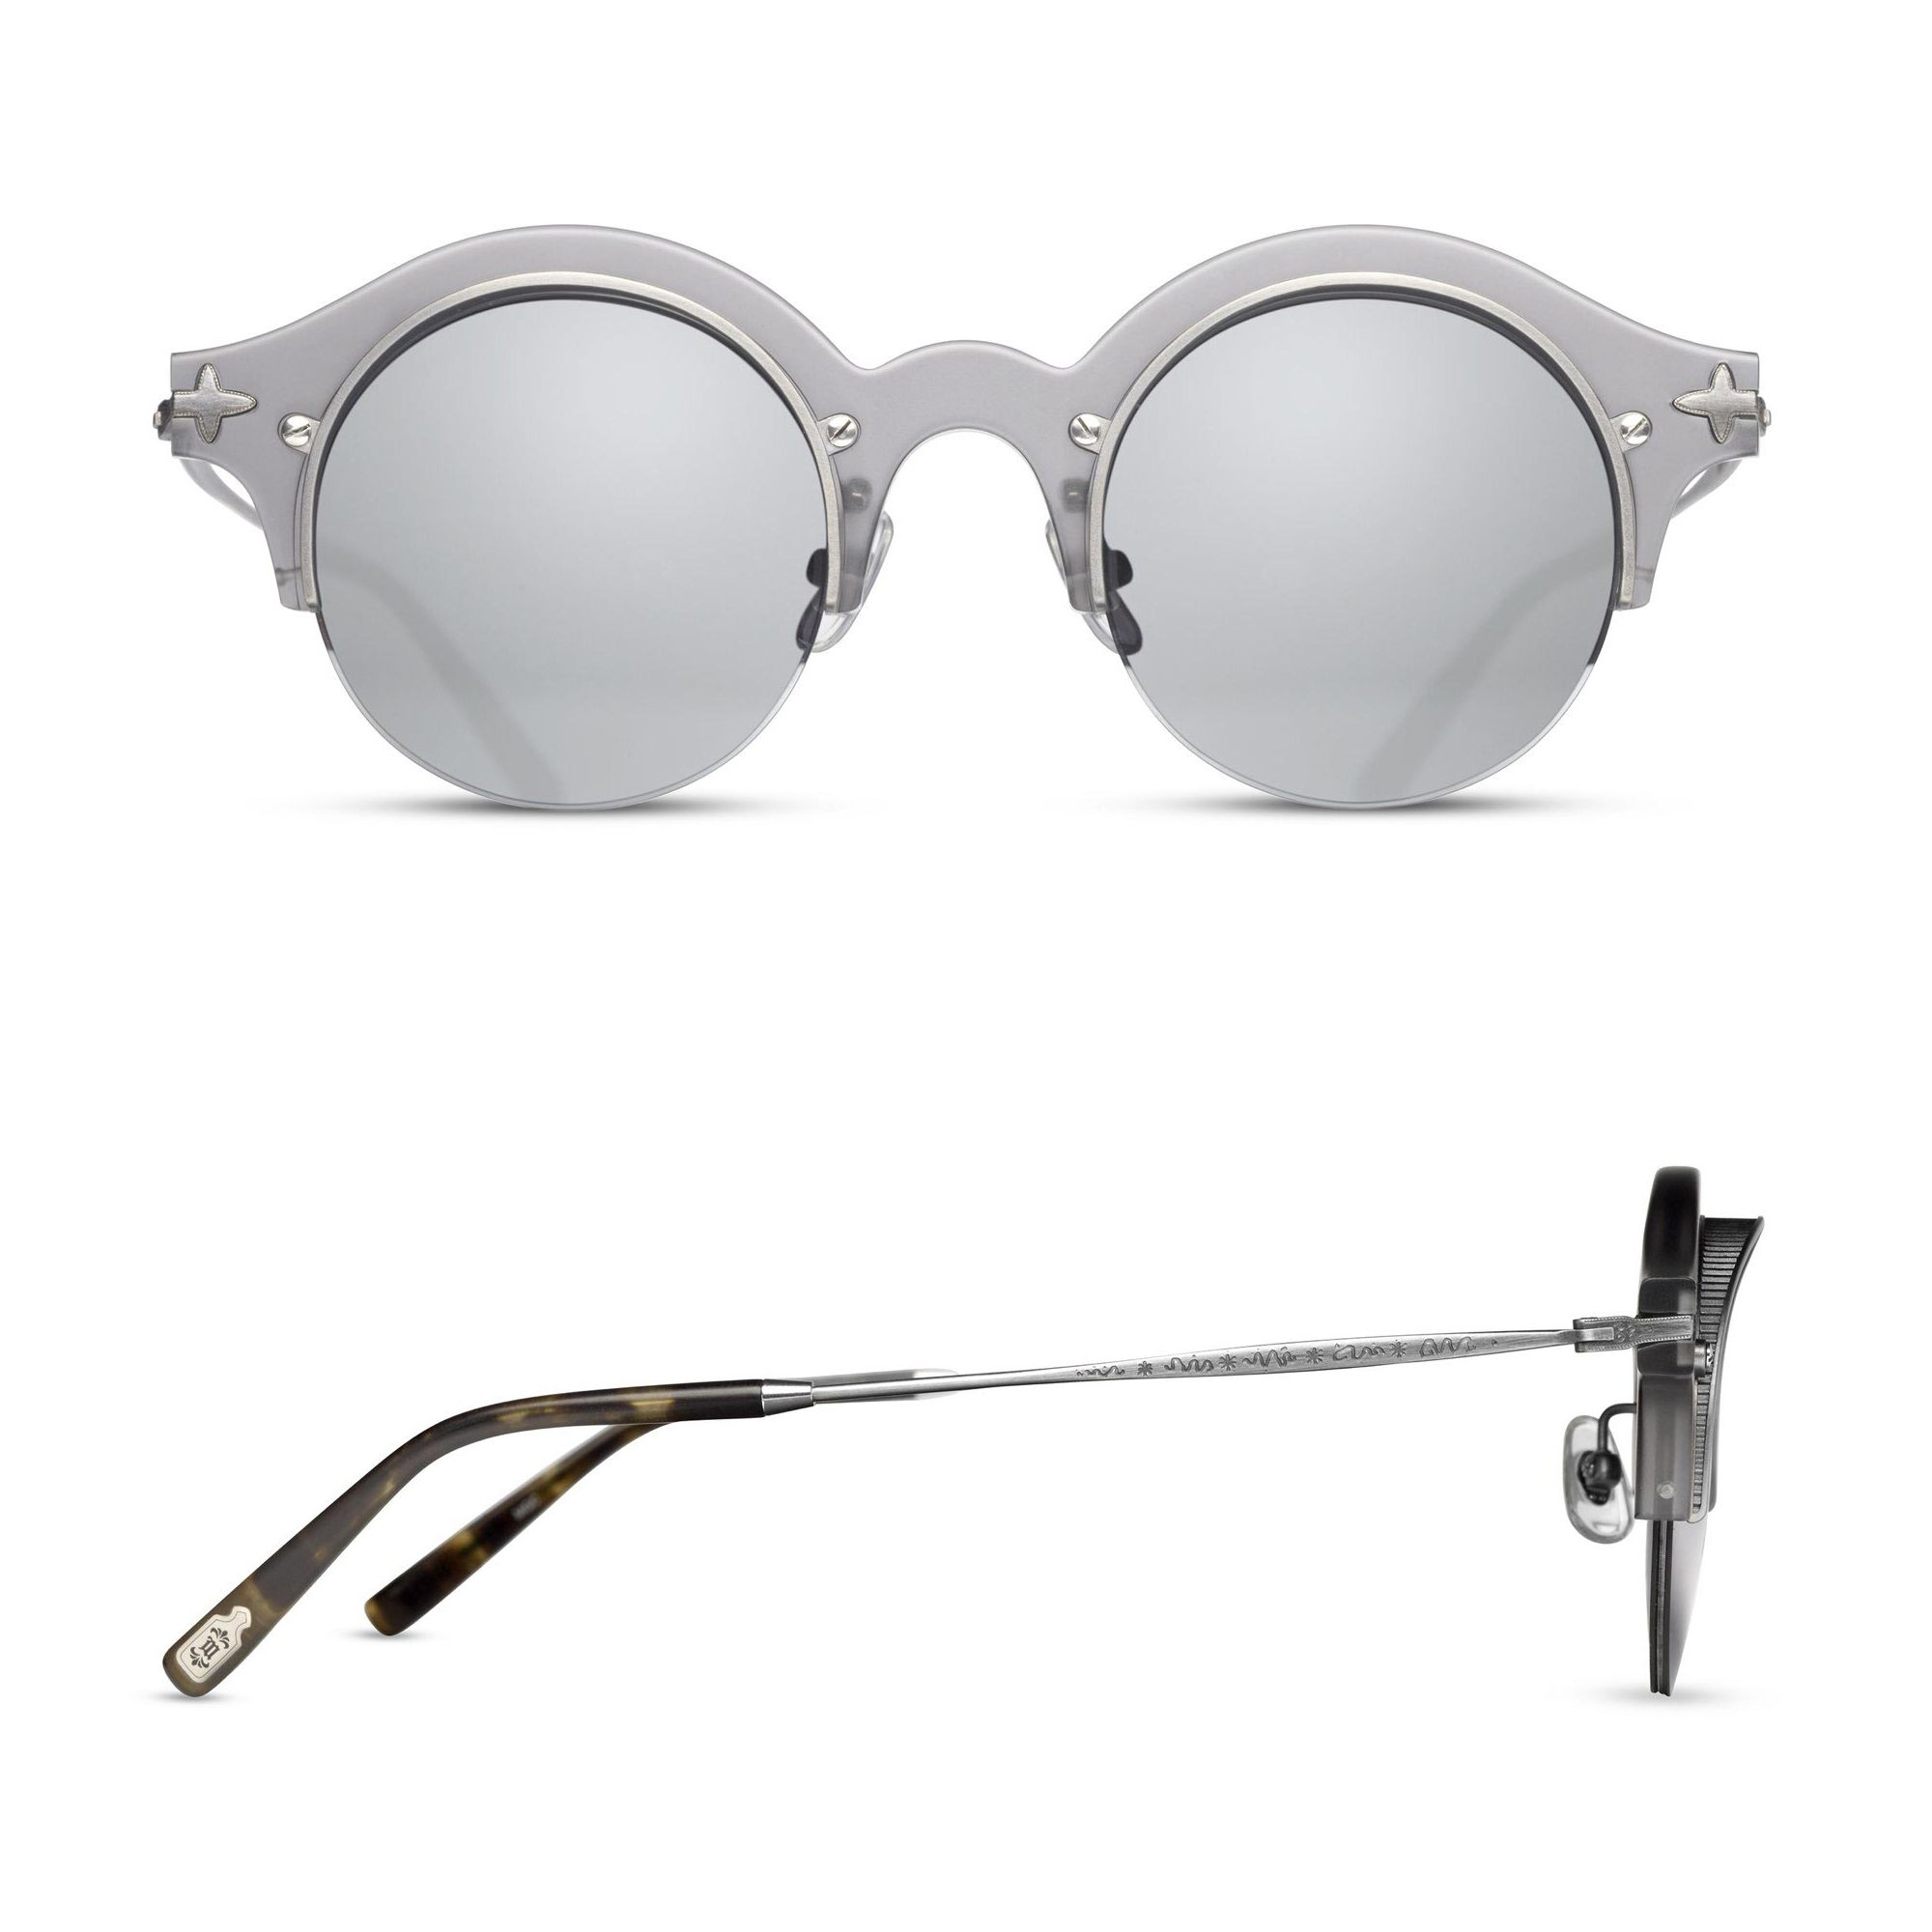 2794398e7 The Matsuda Sunglasses | M1014 is a unique style constructed of Japanese  acetate and engraved metals. The round shape and visors mounted to the  front were ...